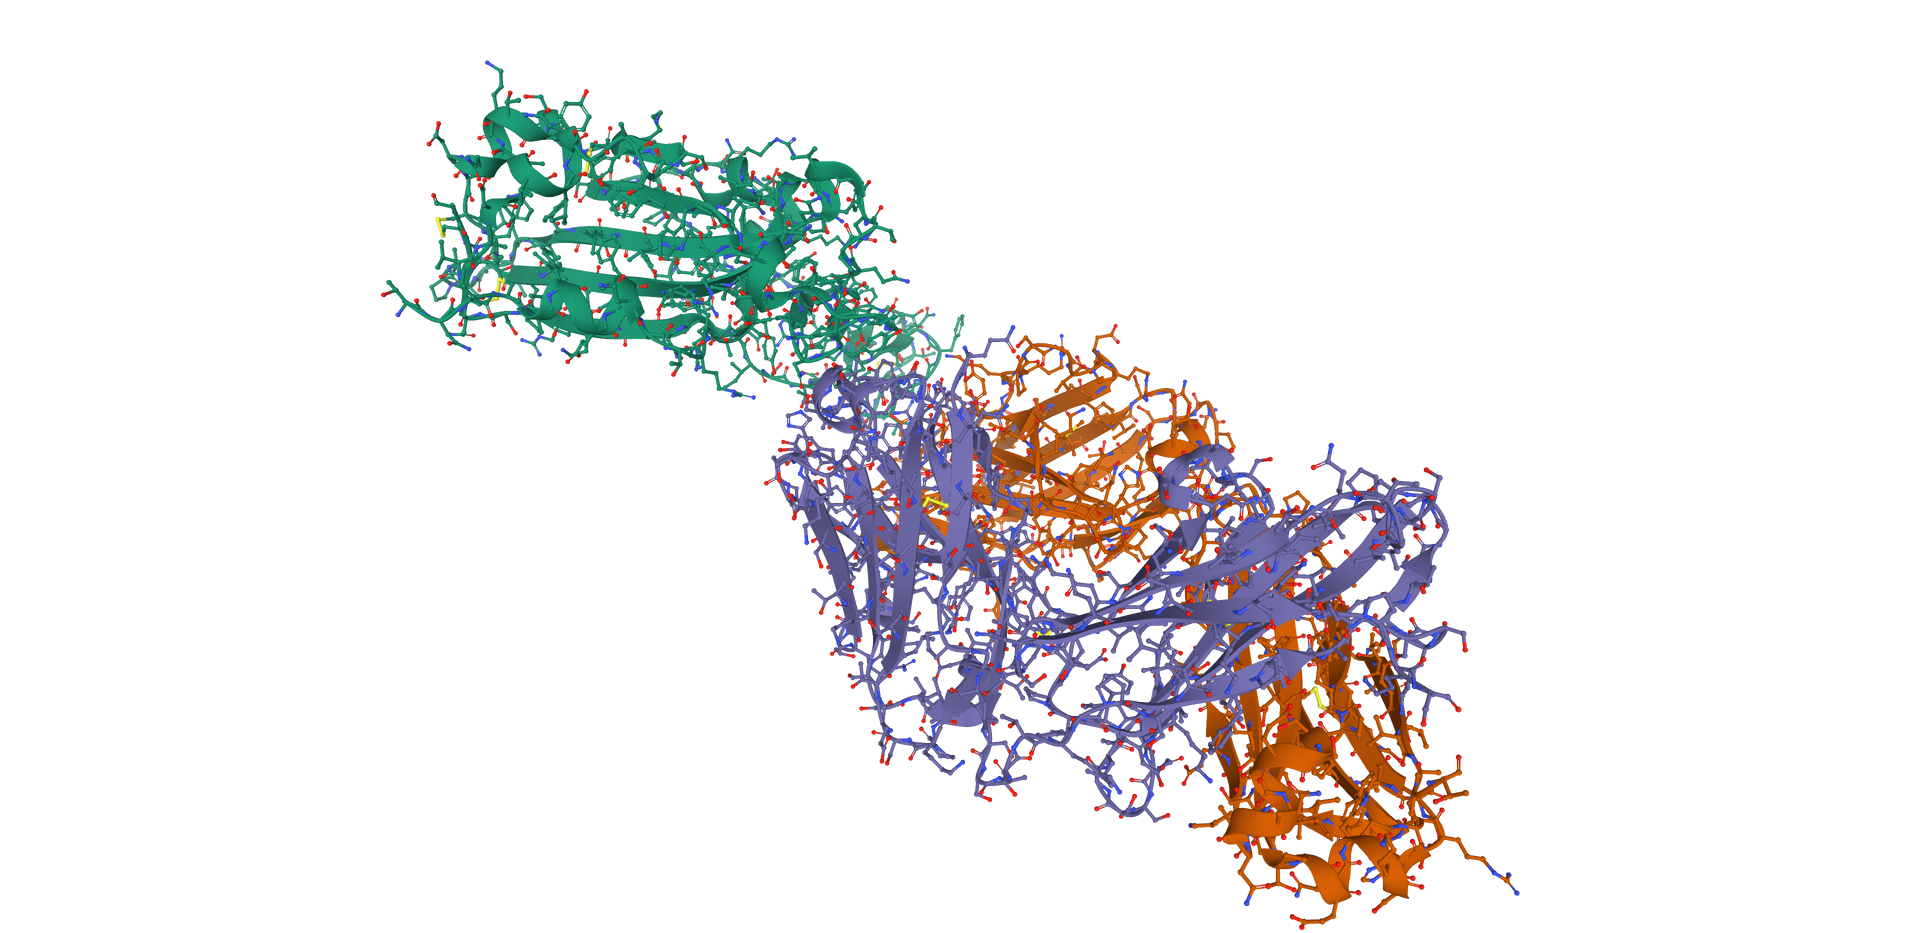 Protein Structure Visualization (1).png